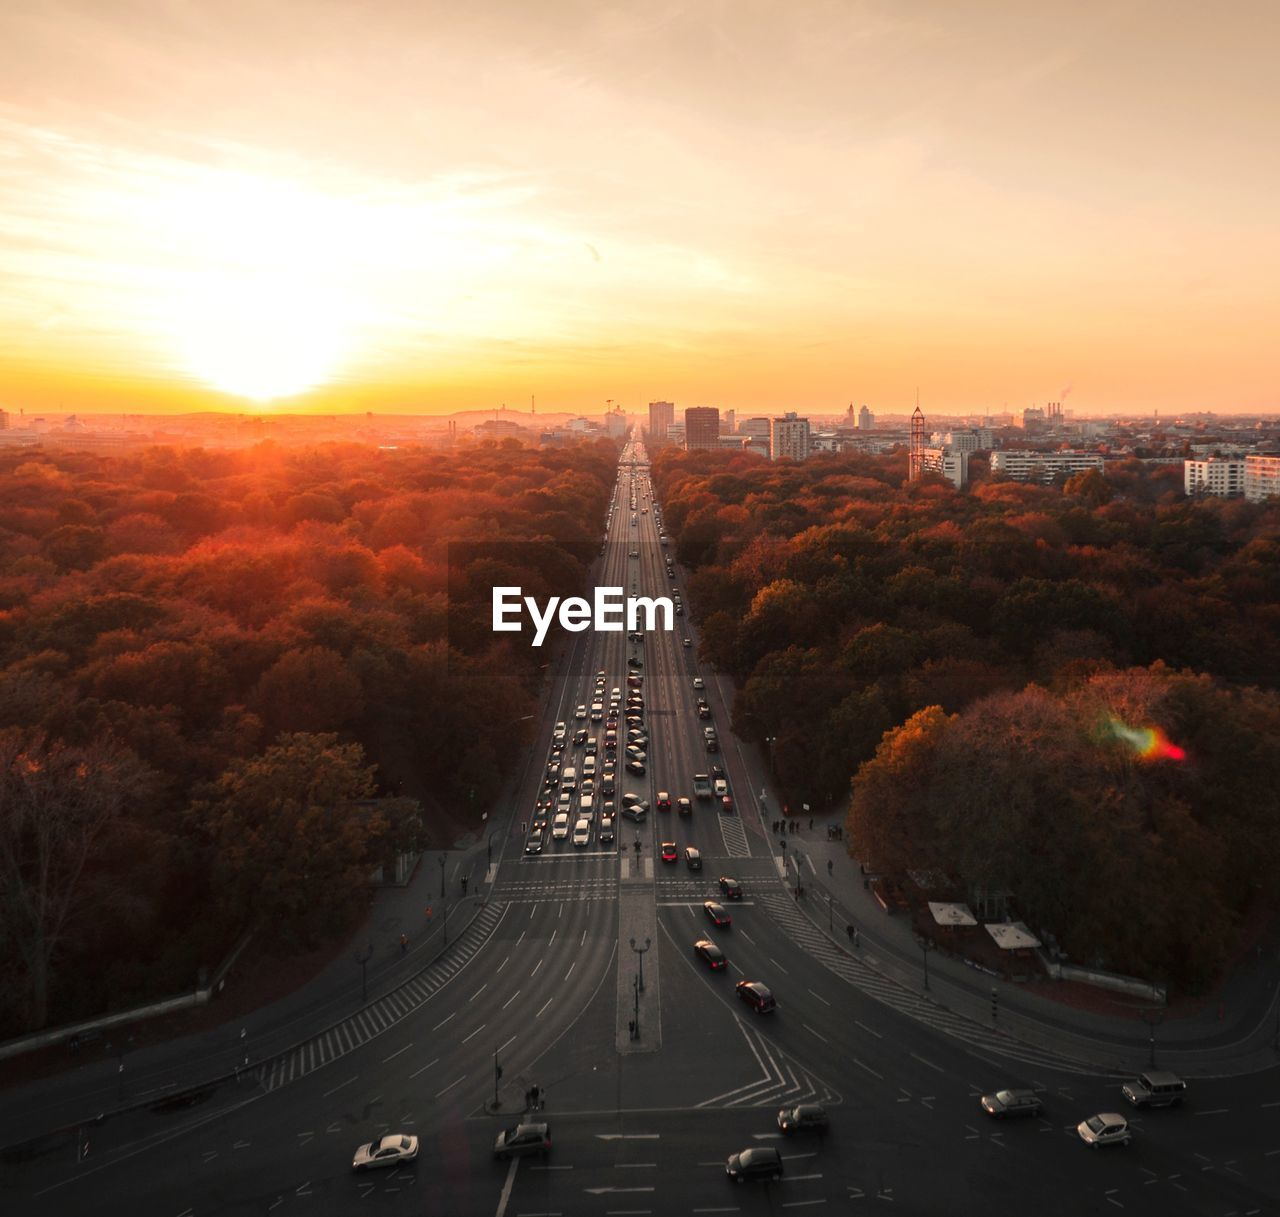 HIGH ANGLE VIEW OF HIGHWAY IN CITY AT SUNSET